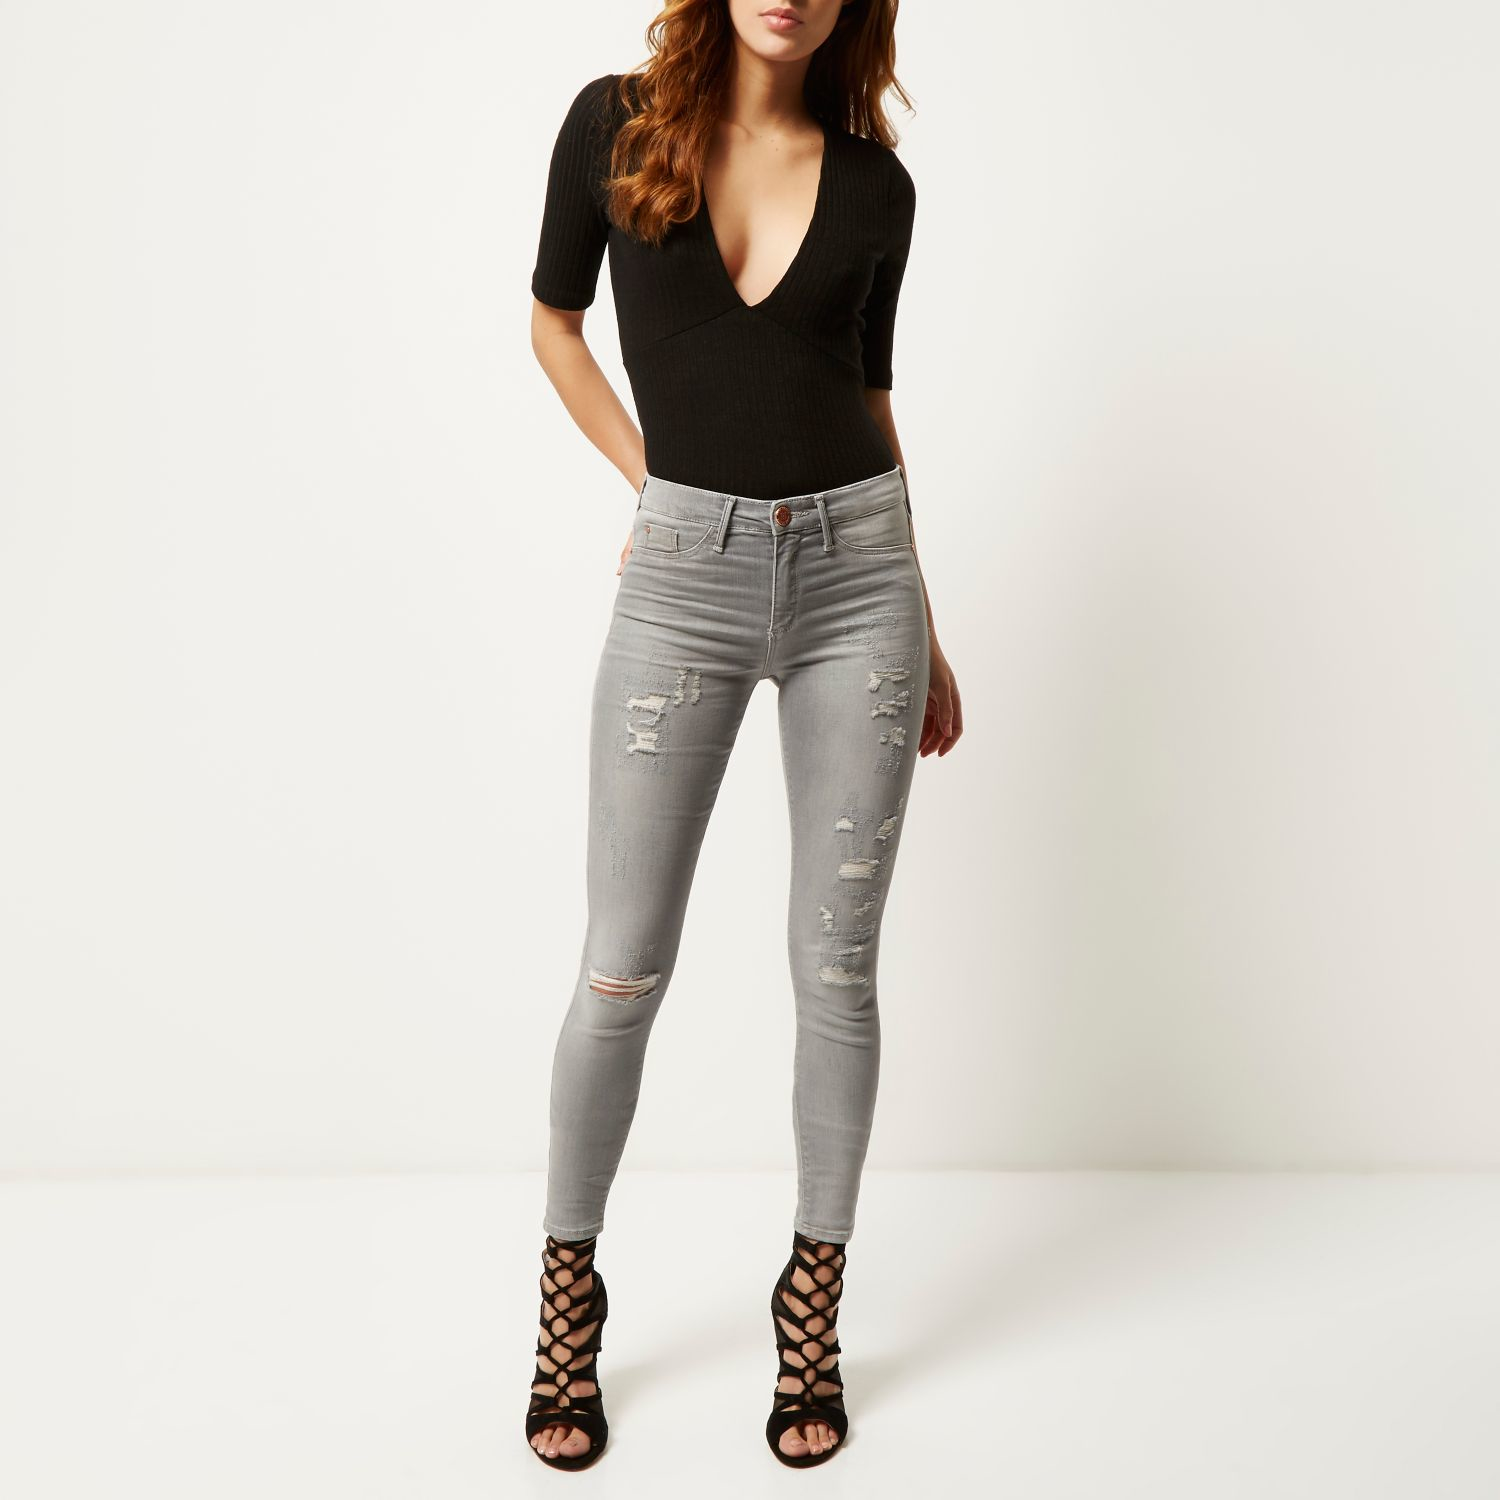 58cdf2d4266b7 River Island Light Grey Wash Ripped Molly Jeggings in Gray - Lyst